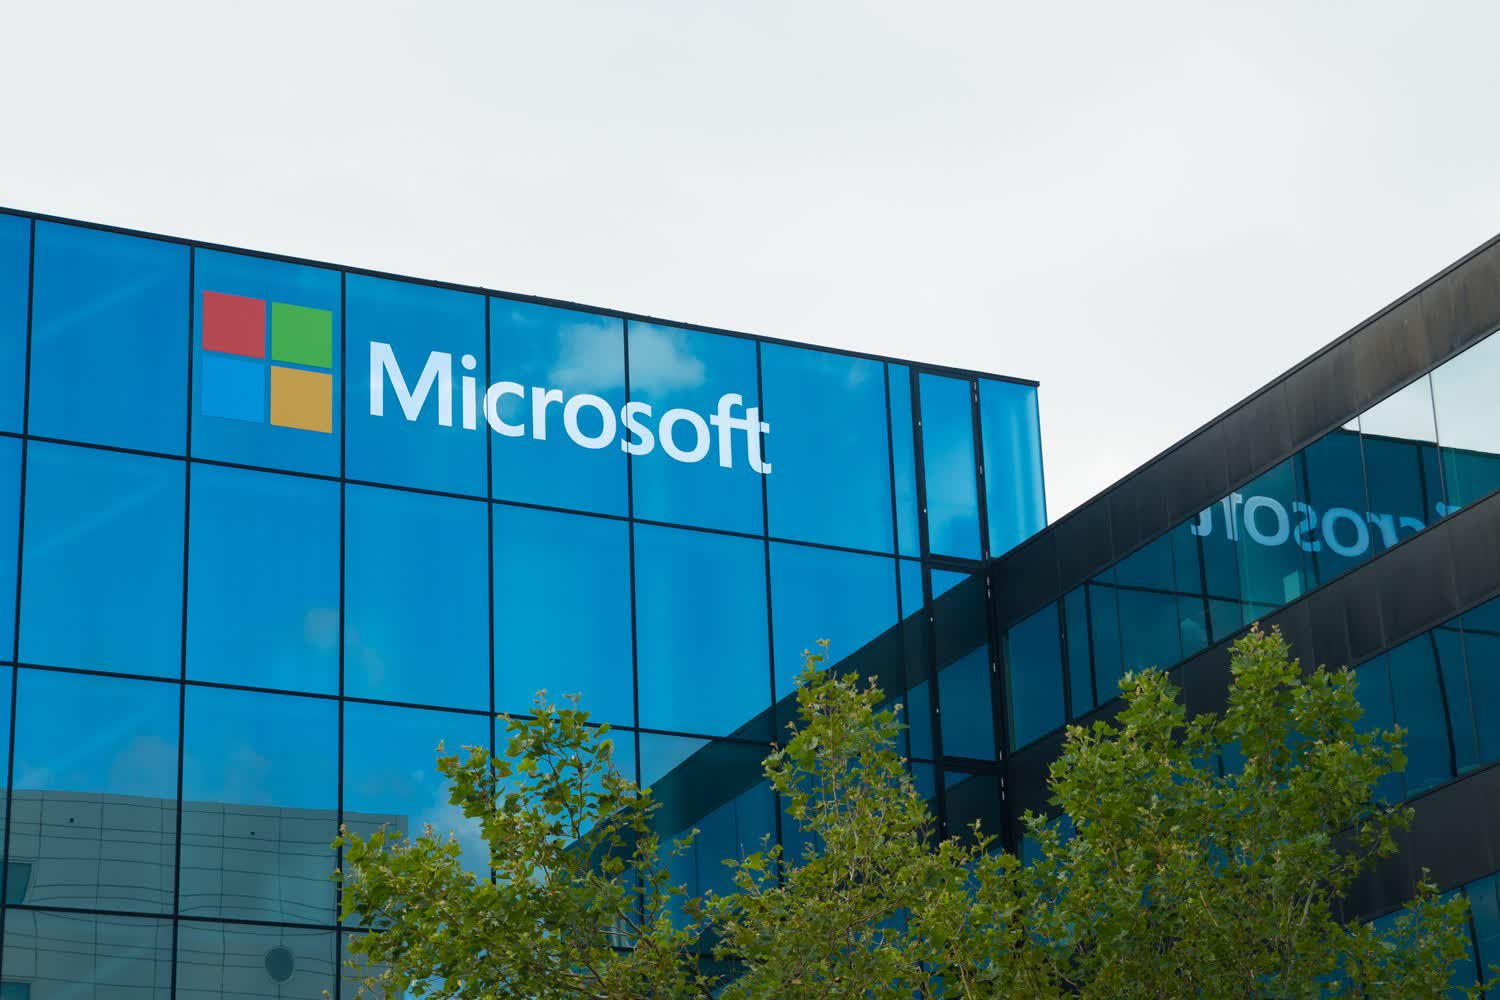 Microsoft's security business made $10 billion in 2020, growing 40% YoY